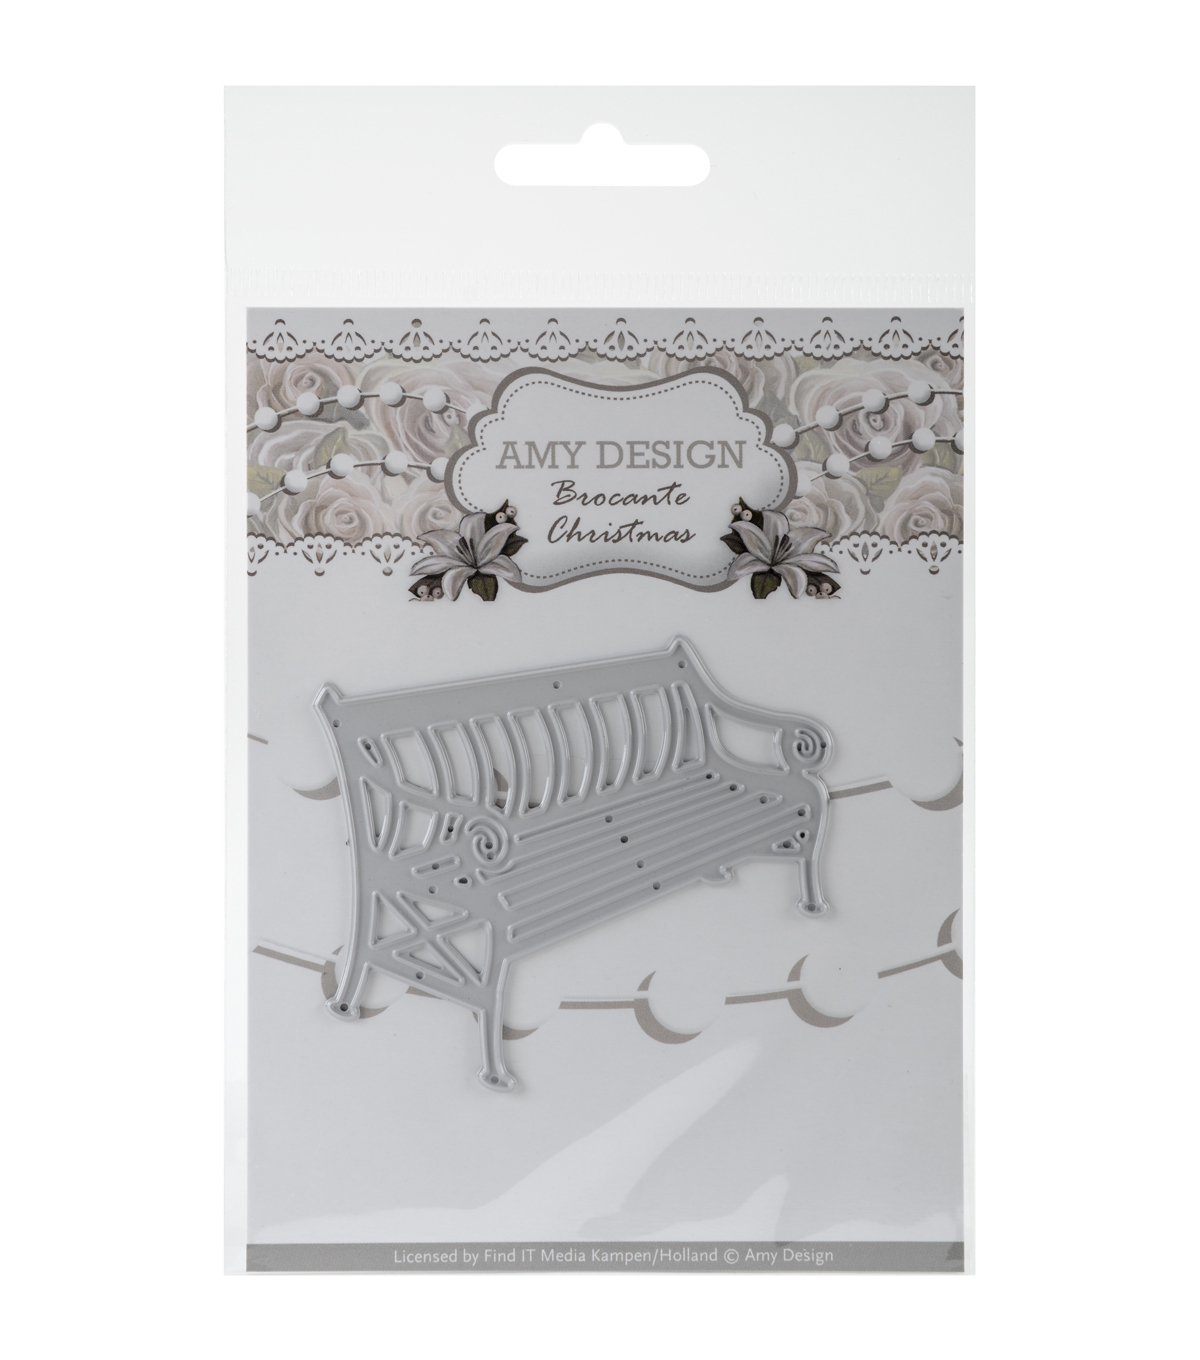 Amy Design Brocante Christmas Die-Bench